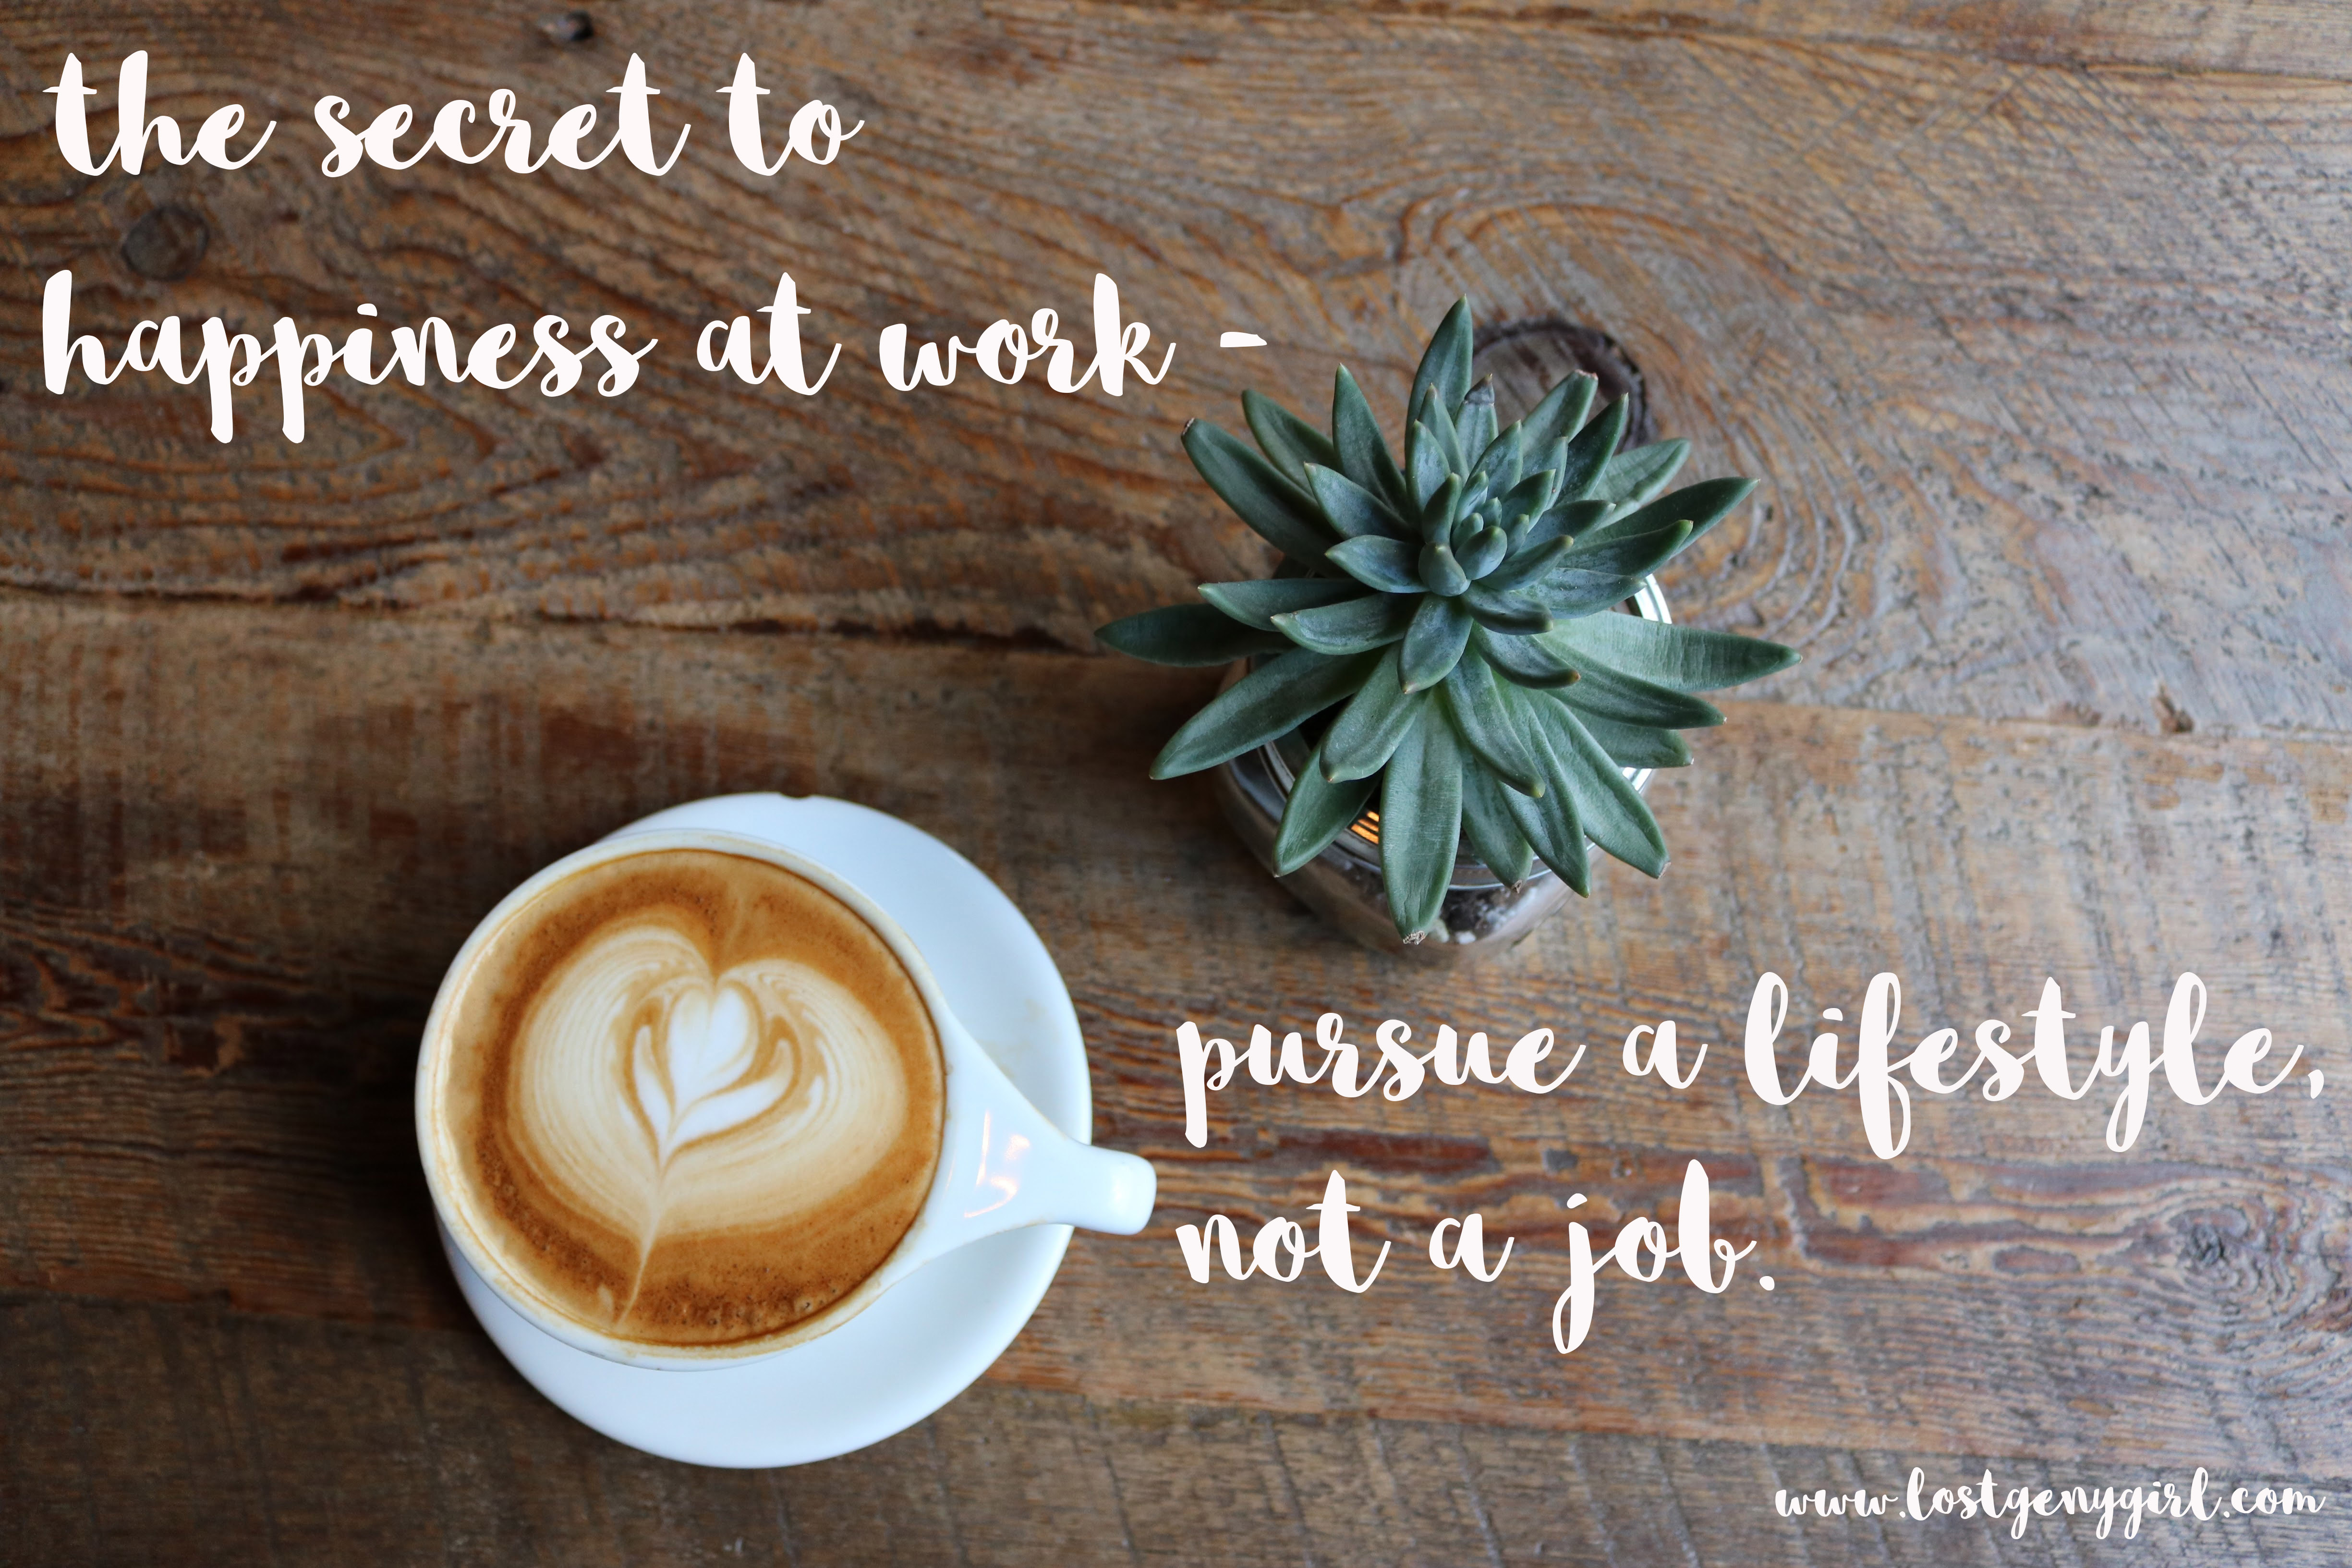 pursue a lifestyle not a job